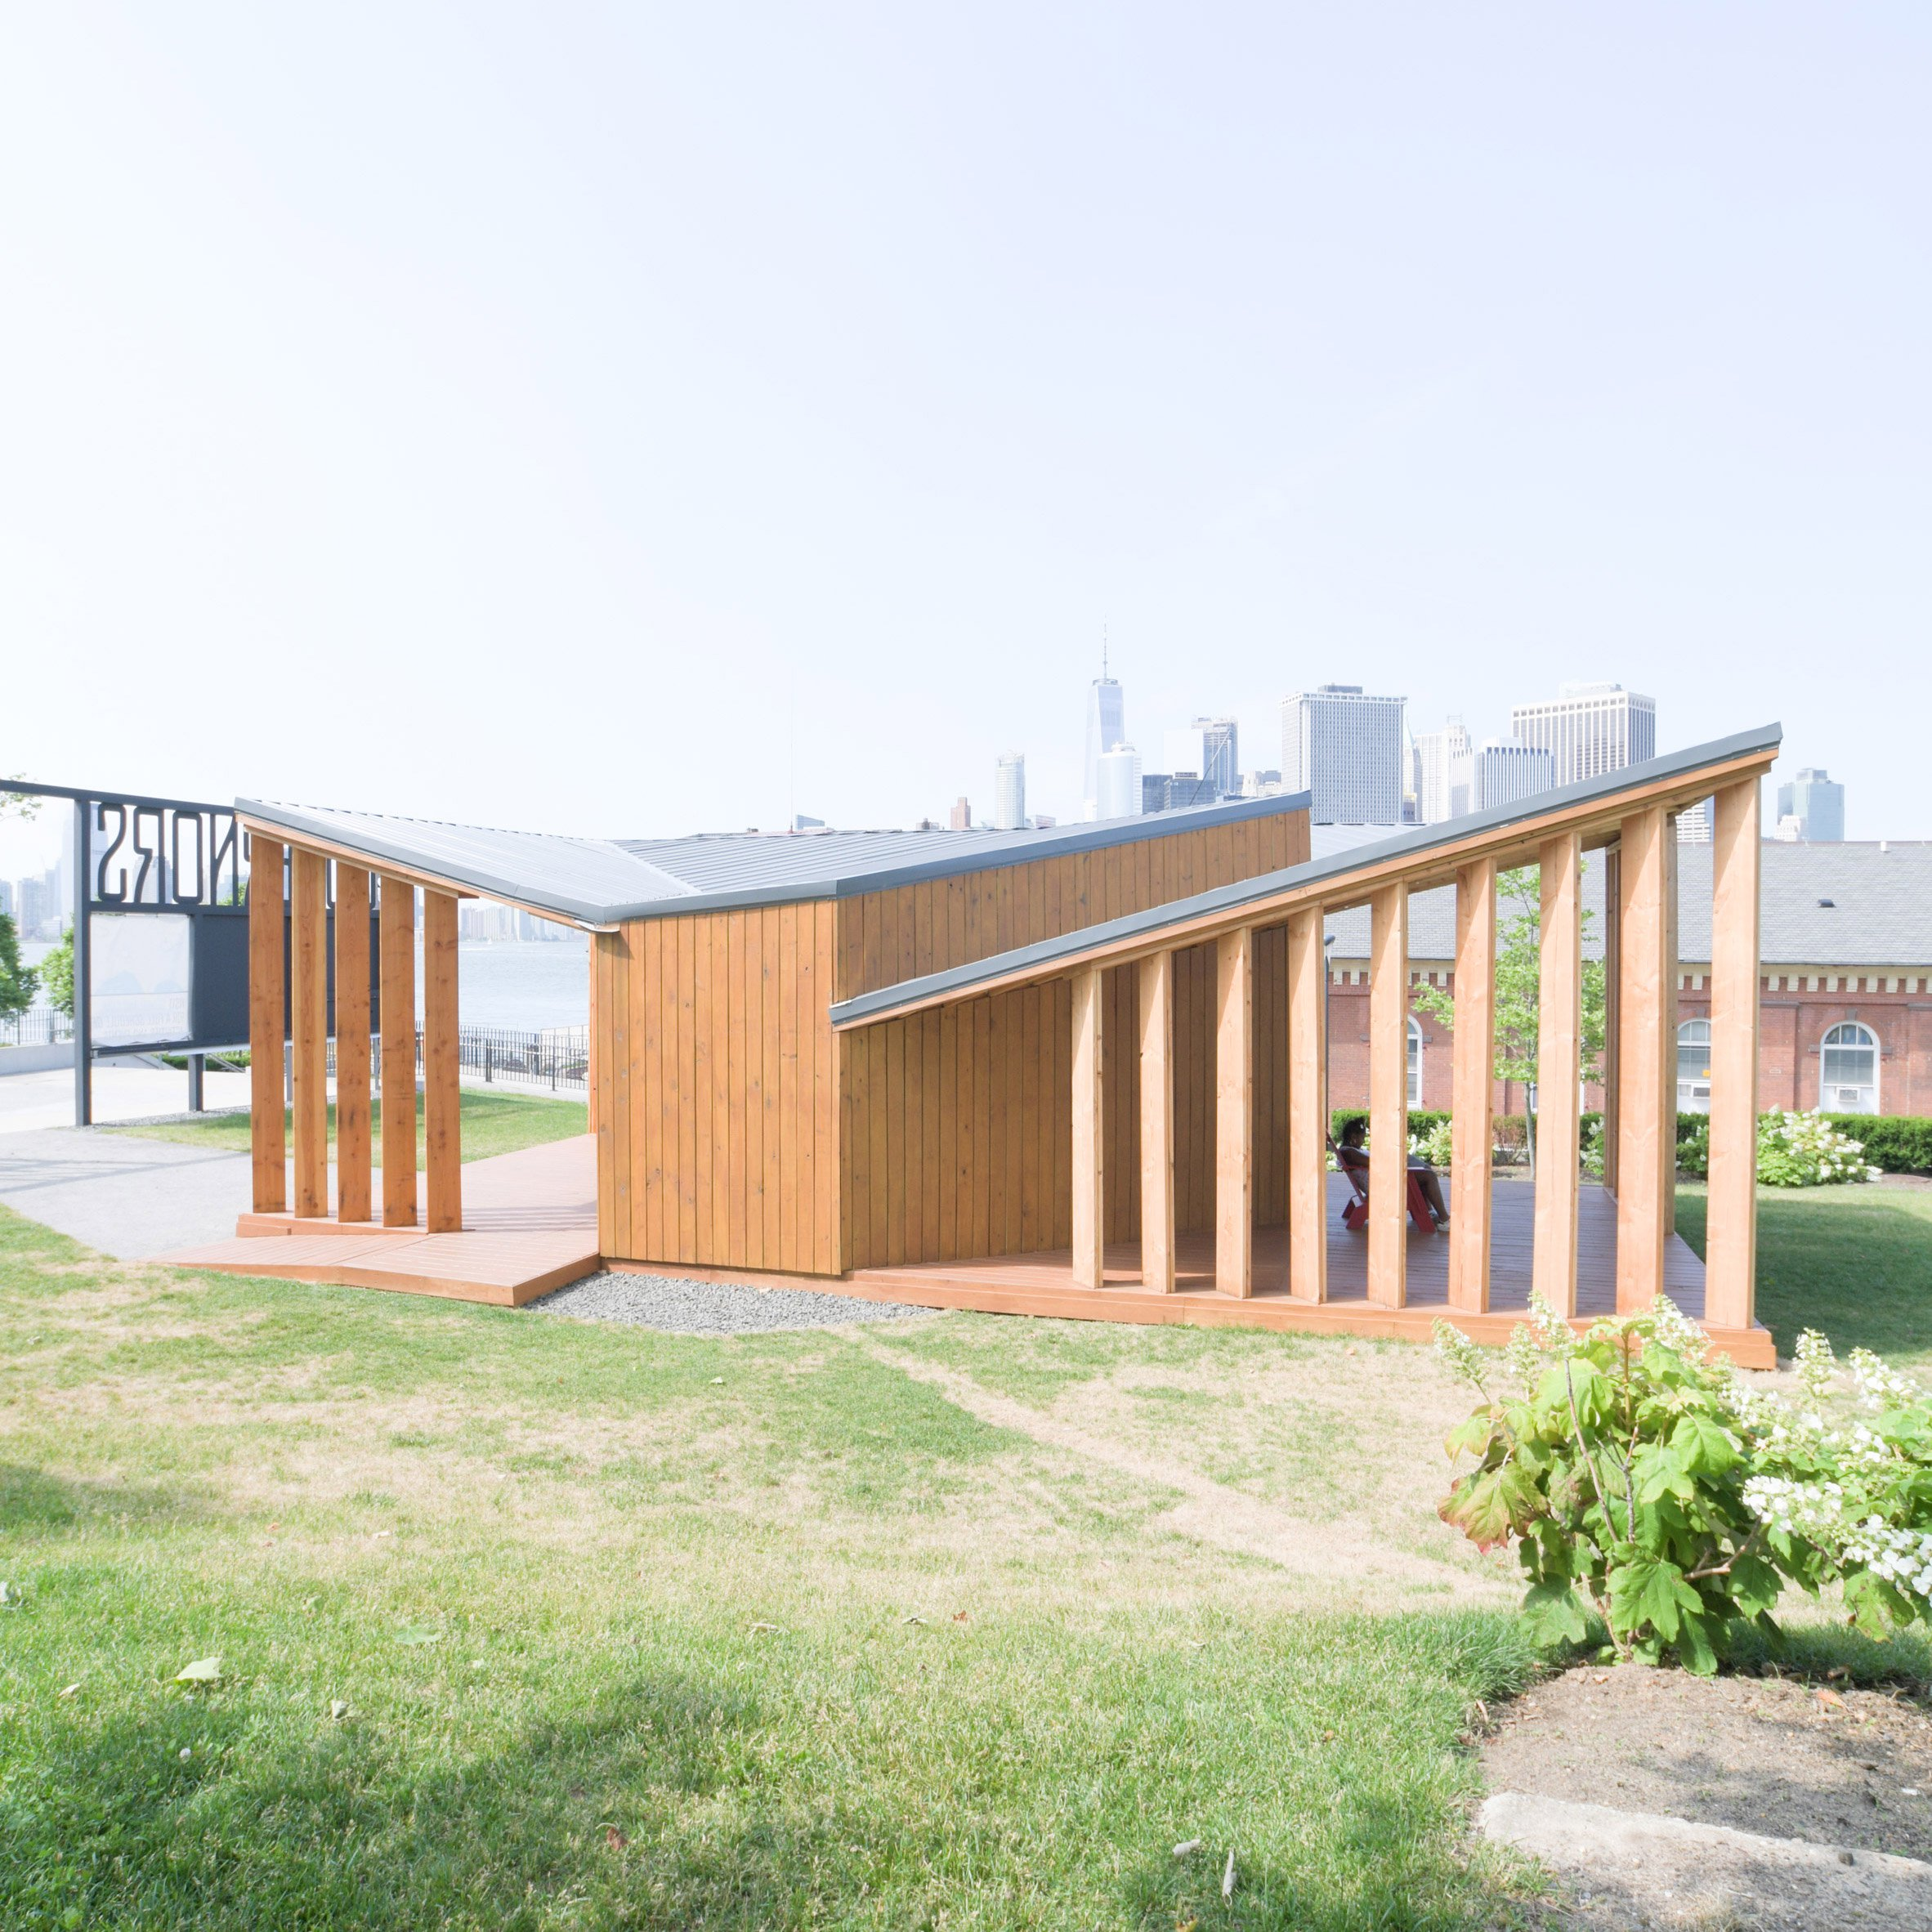 Office III builds simple open-air welcome centre on Governors Island